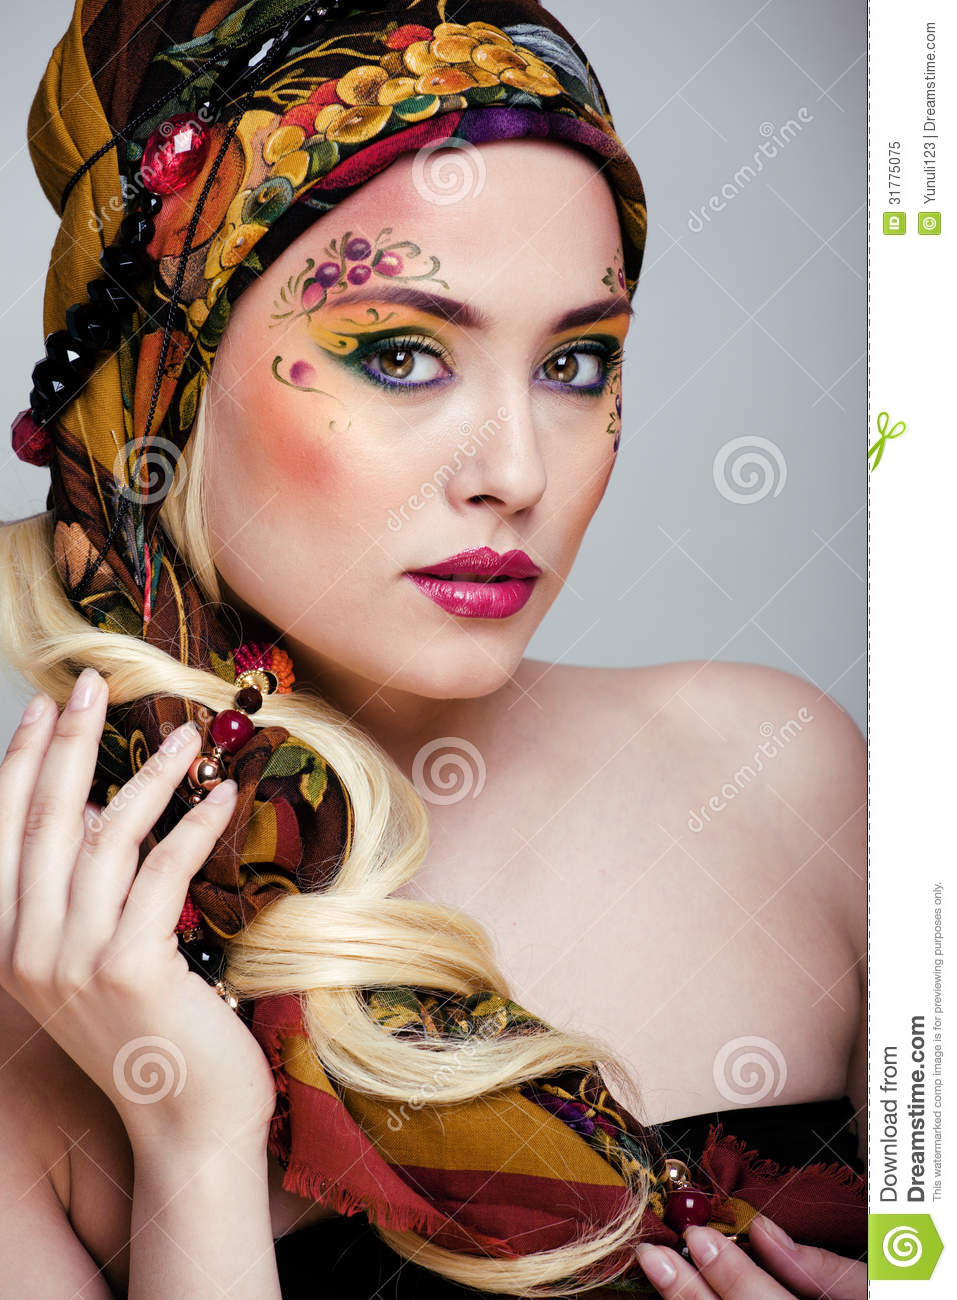 Portrait Of Beauty Woman With Face Art Royalty Free Stock Photo ...